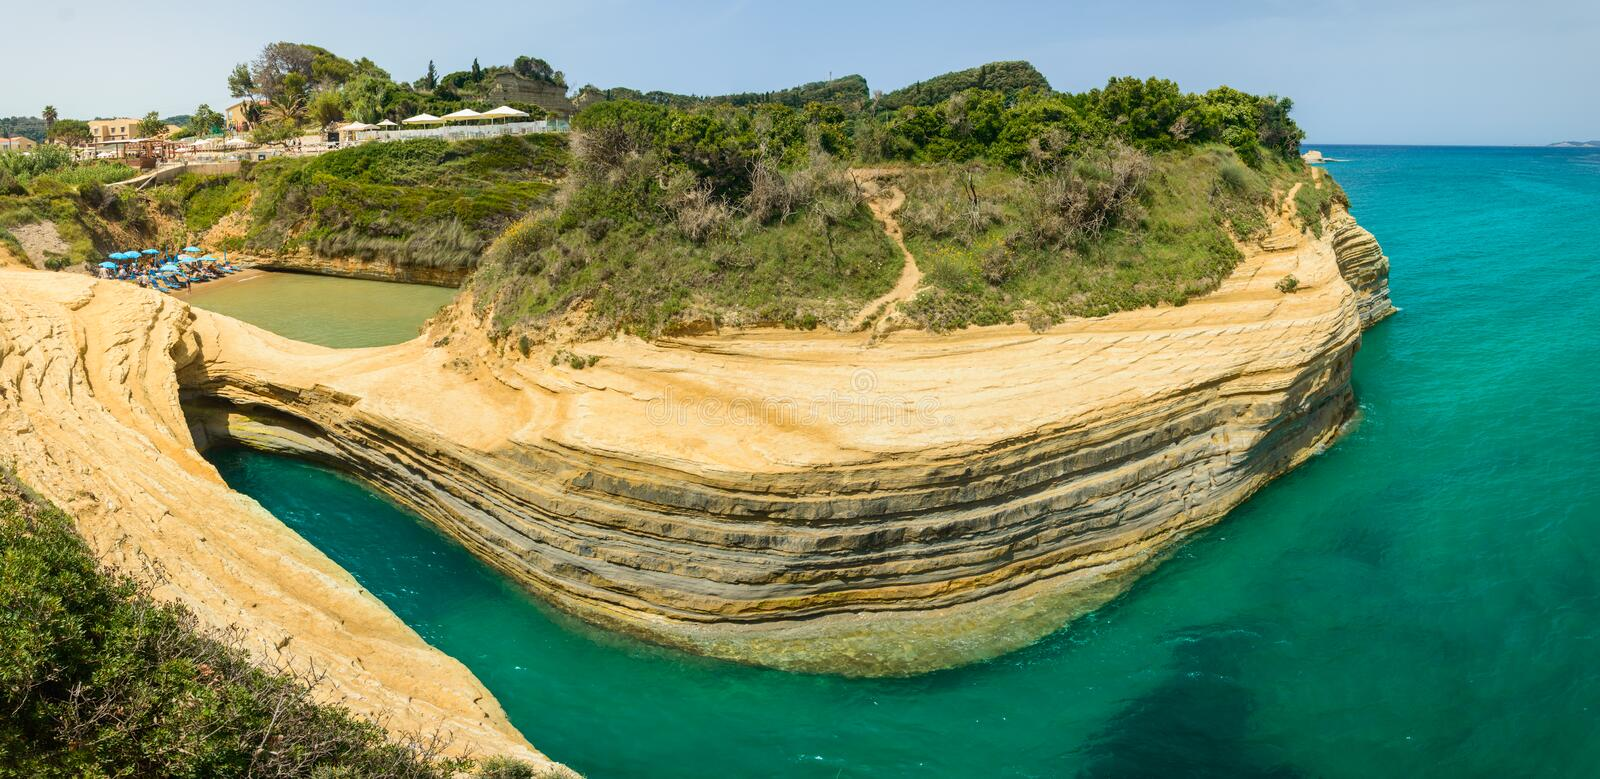 Corfu, Sidari Canal d'Amour panorama on the picturesque sandstone cliffs. Greece damour bay coast rocks beach formations sea waves trees forest sky clouds royalty free stock photos